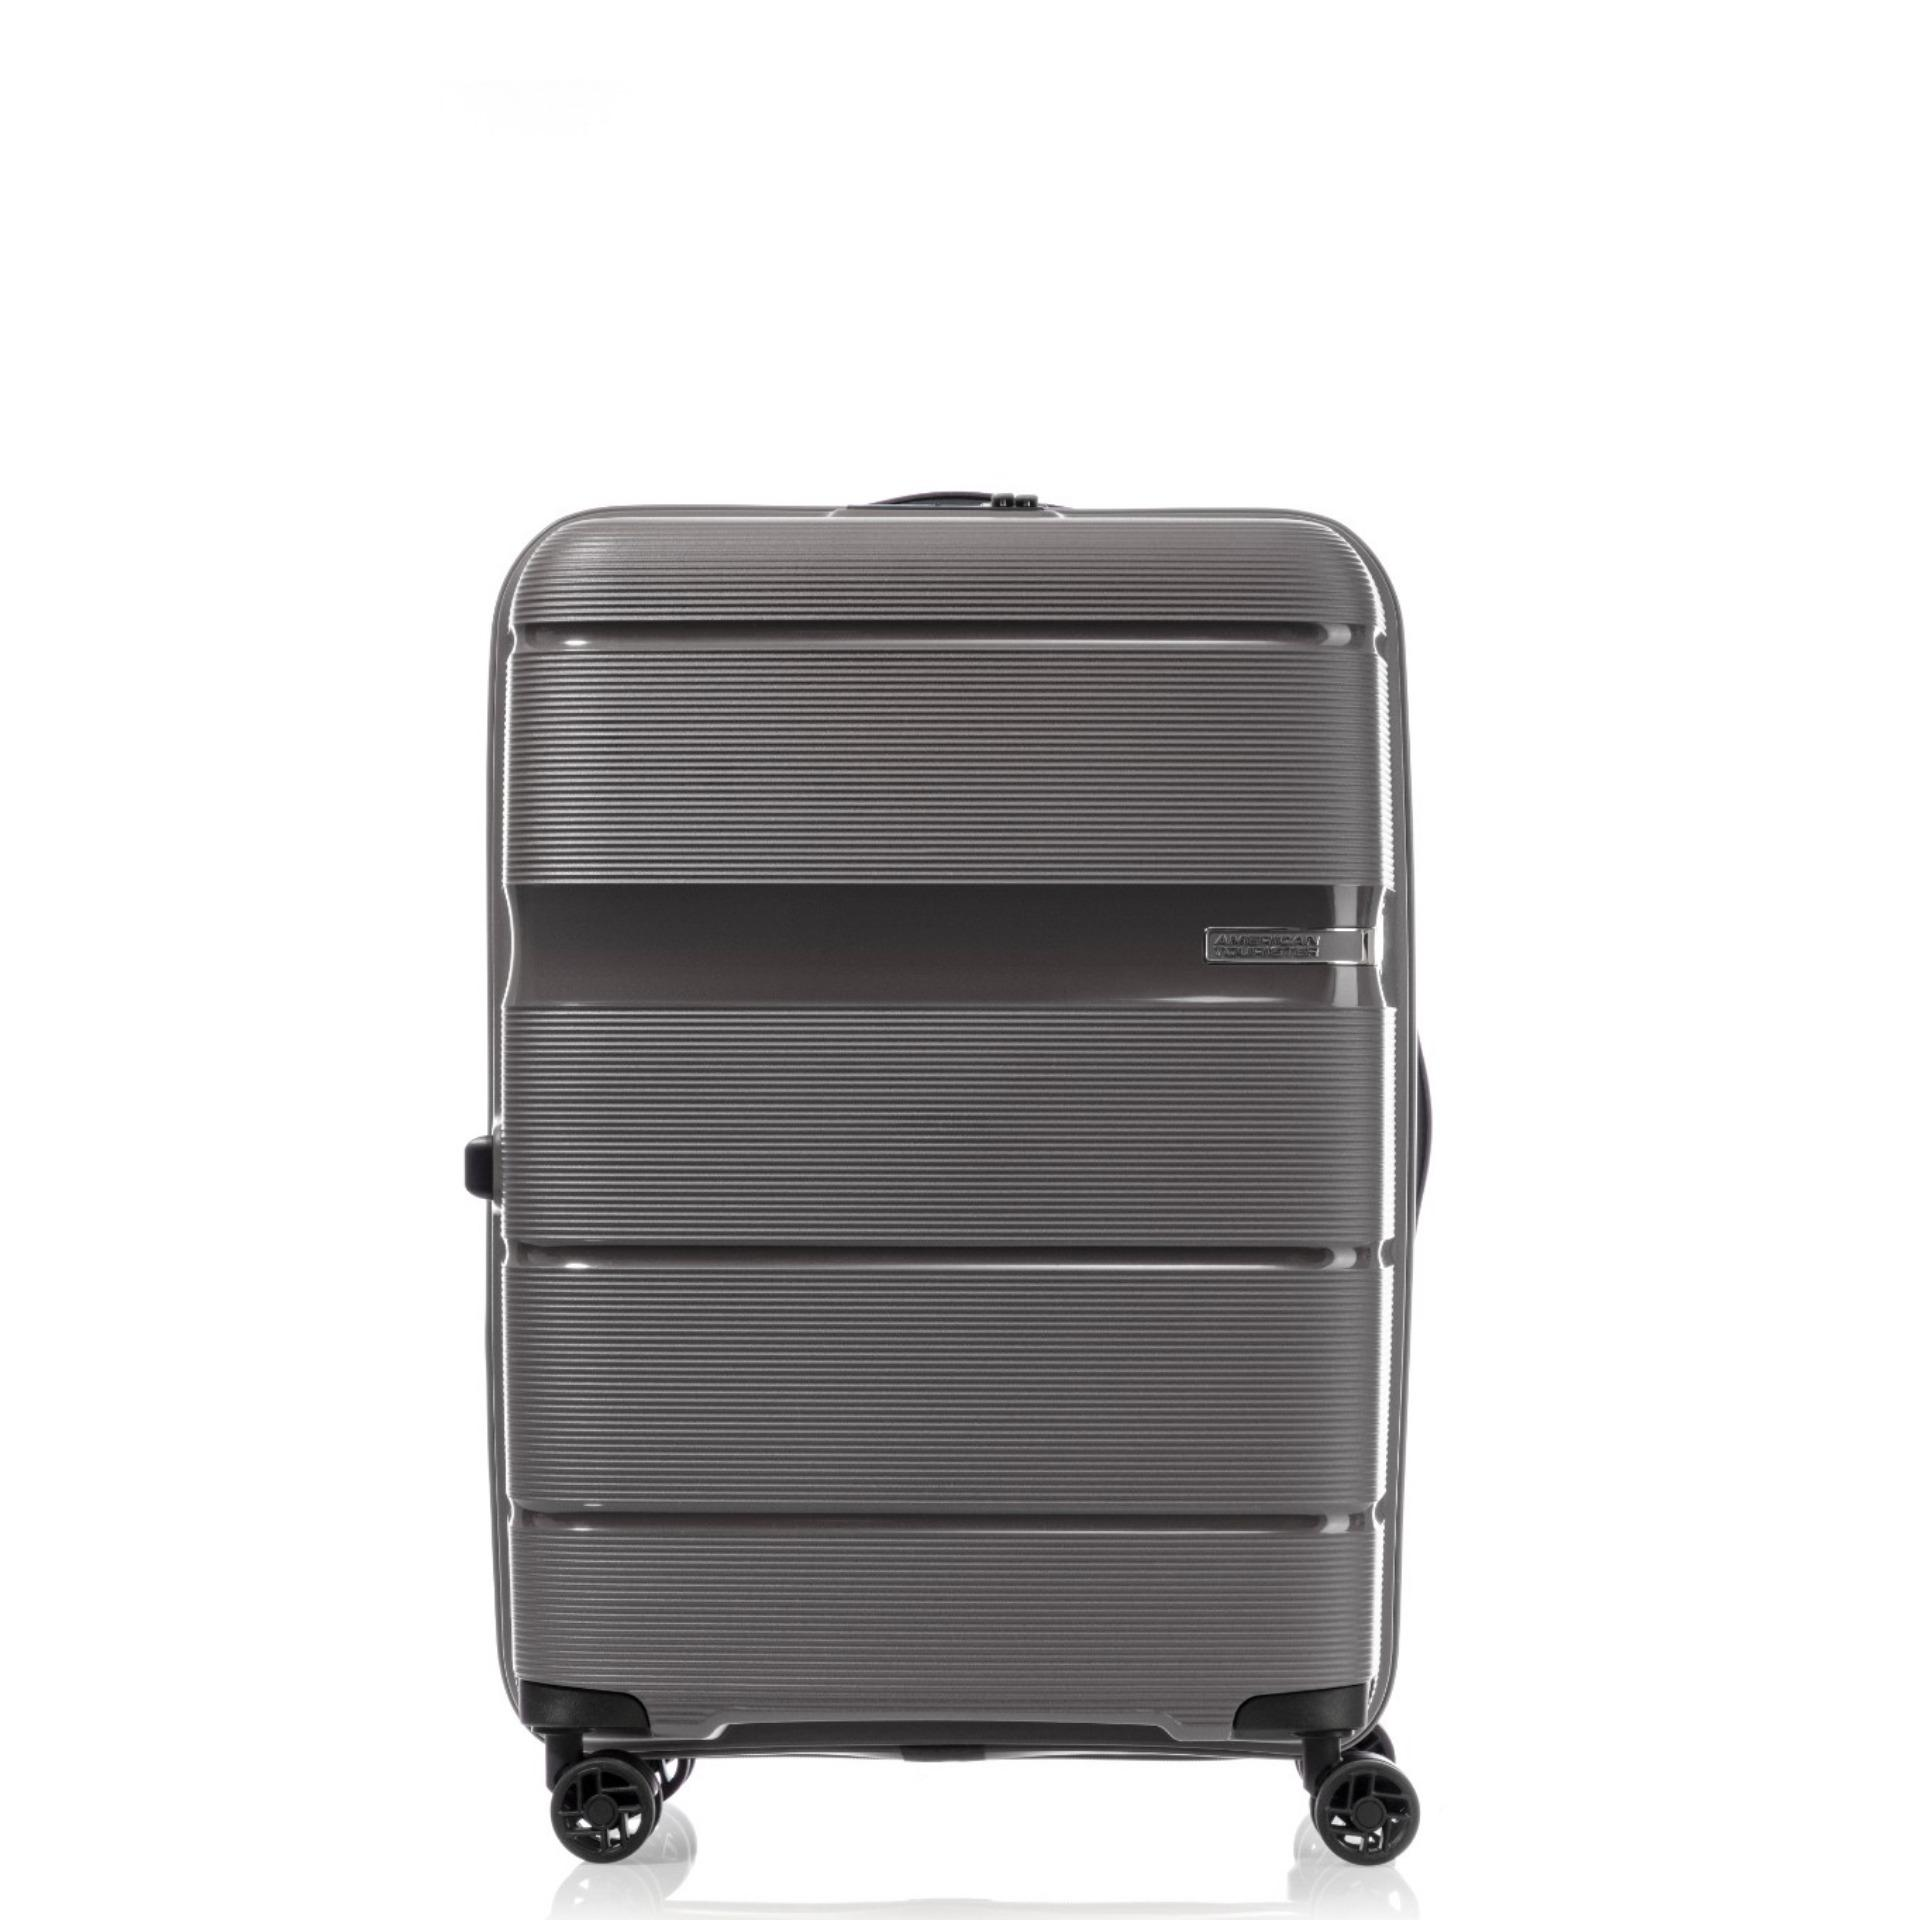 af8633765f American Tourister Philippines  American Tourister price list ...